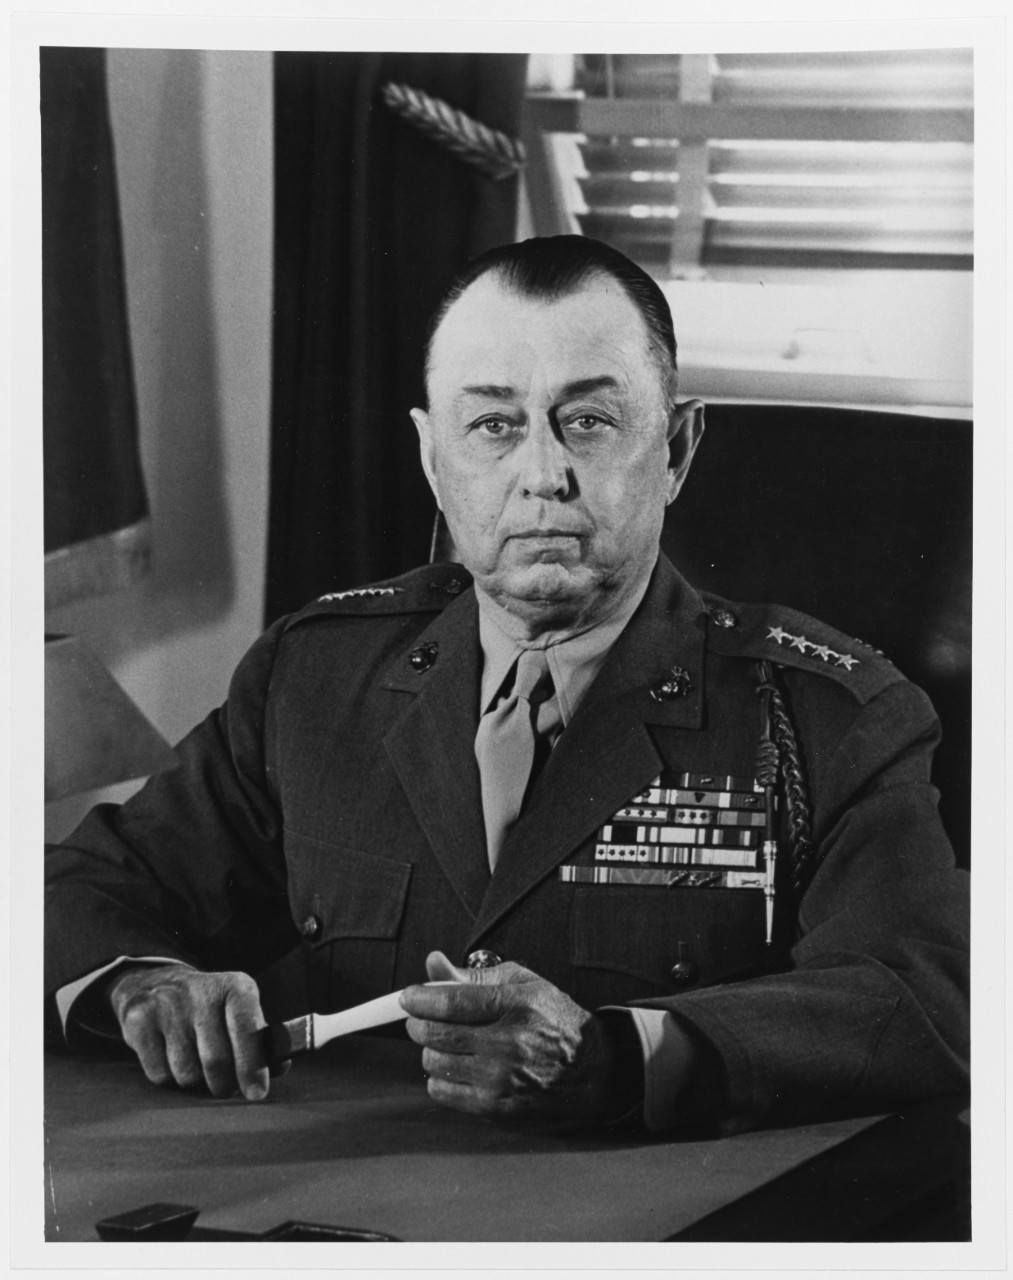 Clifton B. Cates, Nineteenth Commandant of the United States Marine Corps, 1948-1952